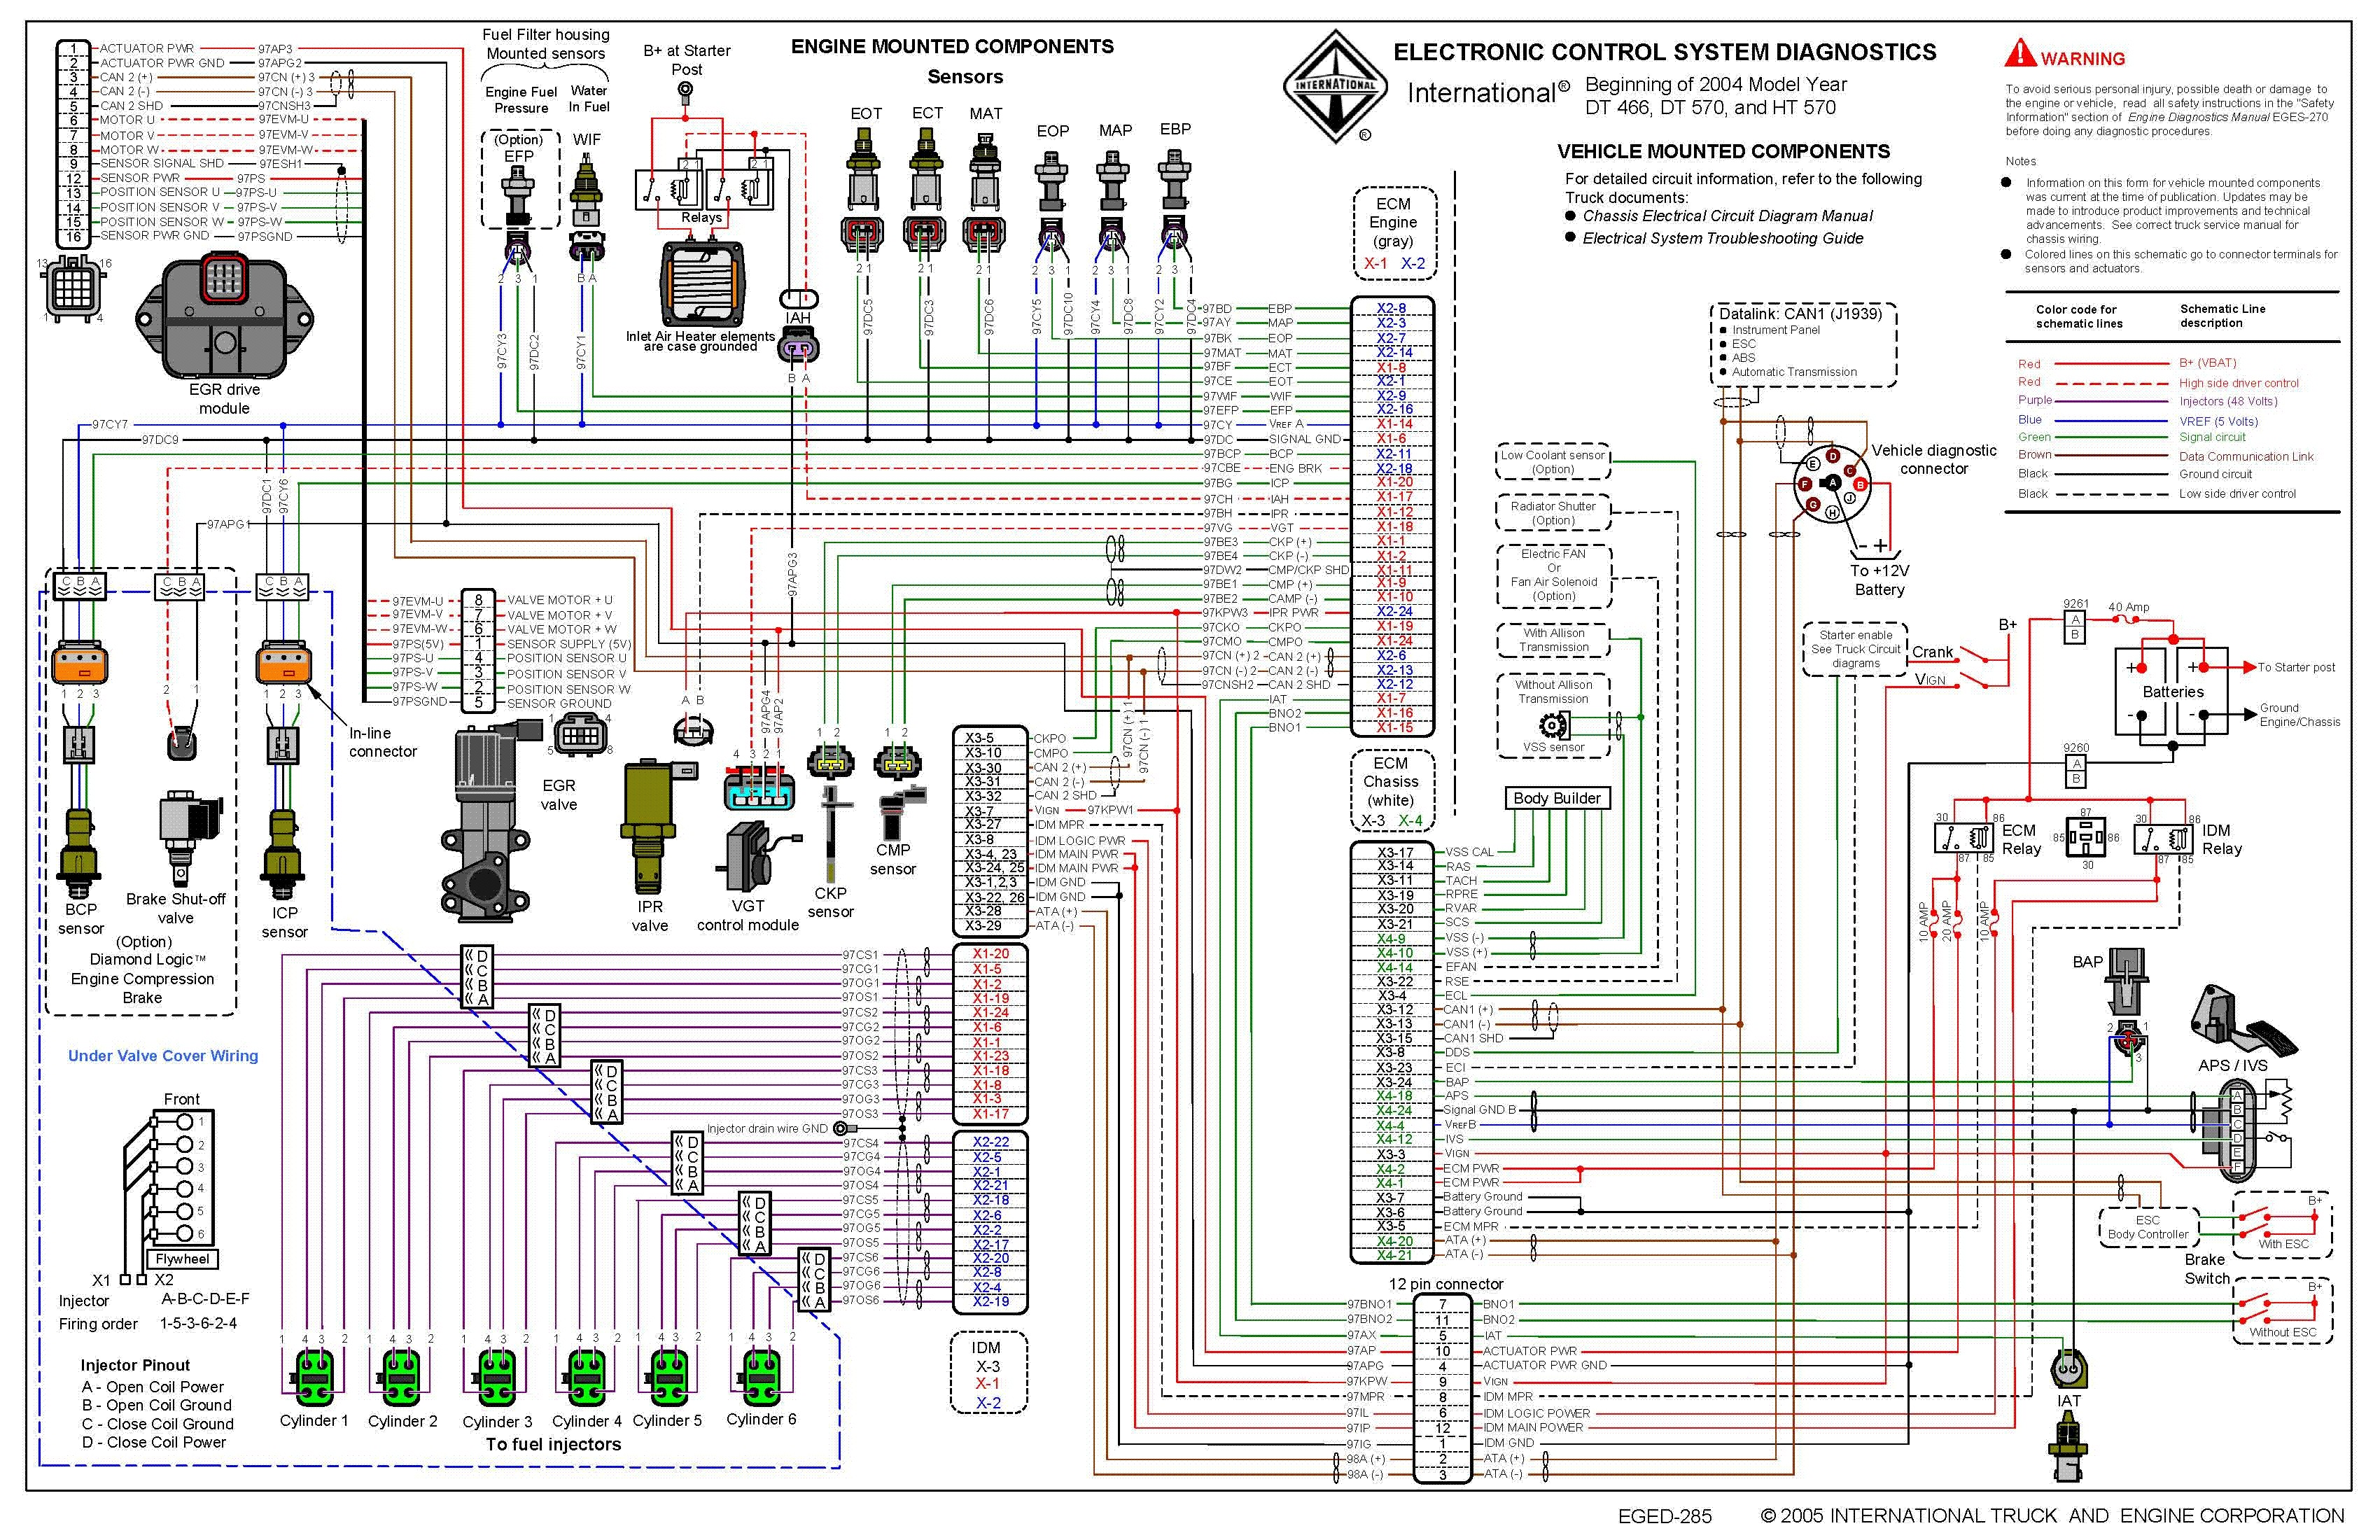 Navistar International Wiring Diagrams Vt365 - Wiring